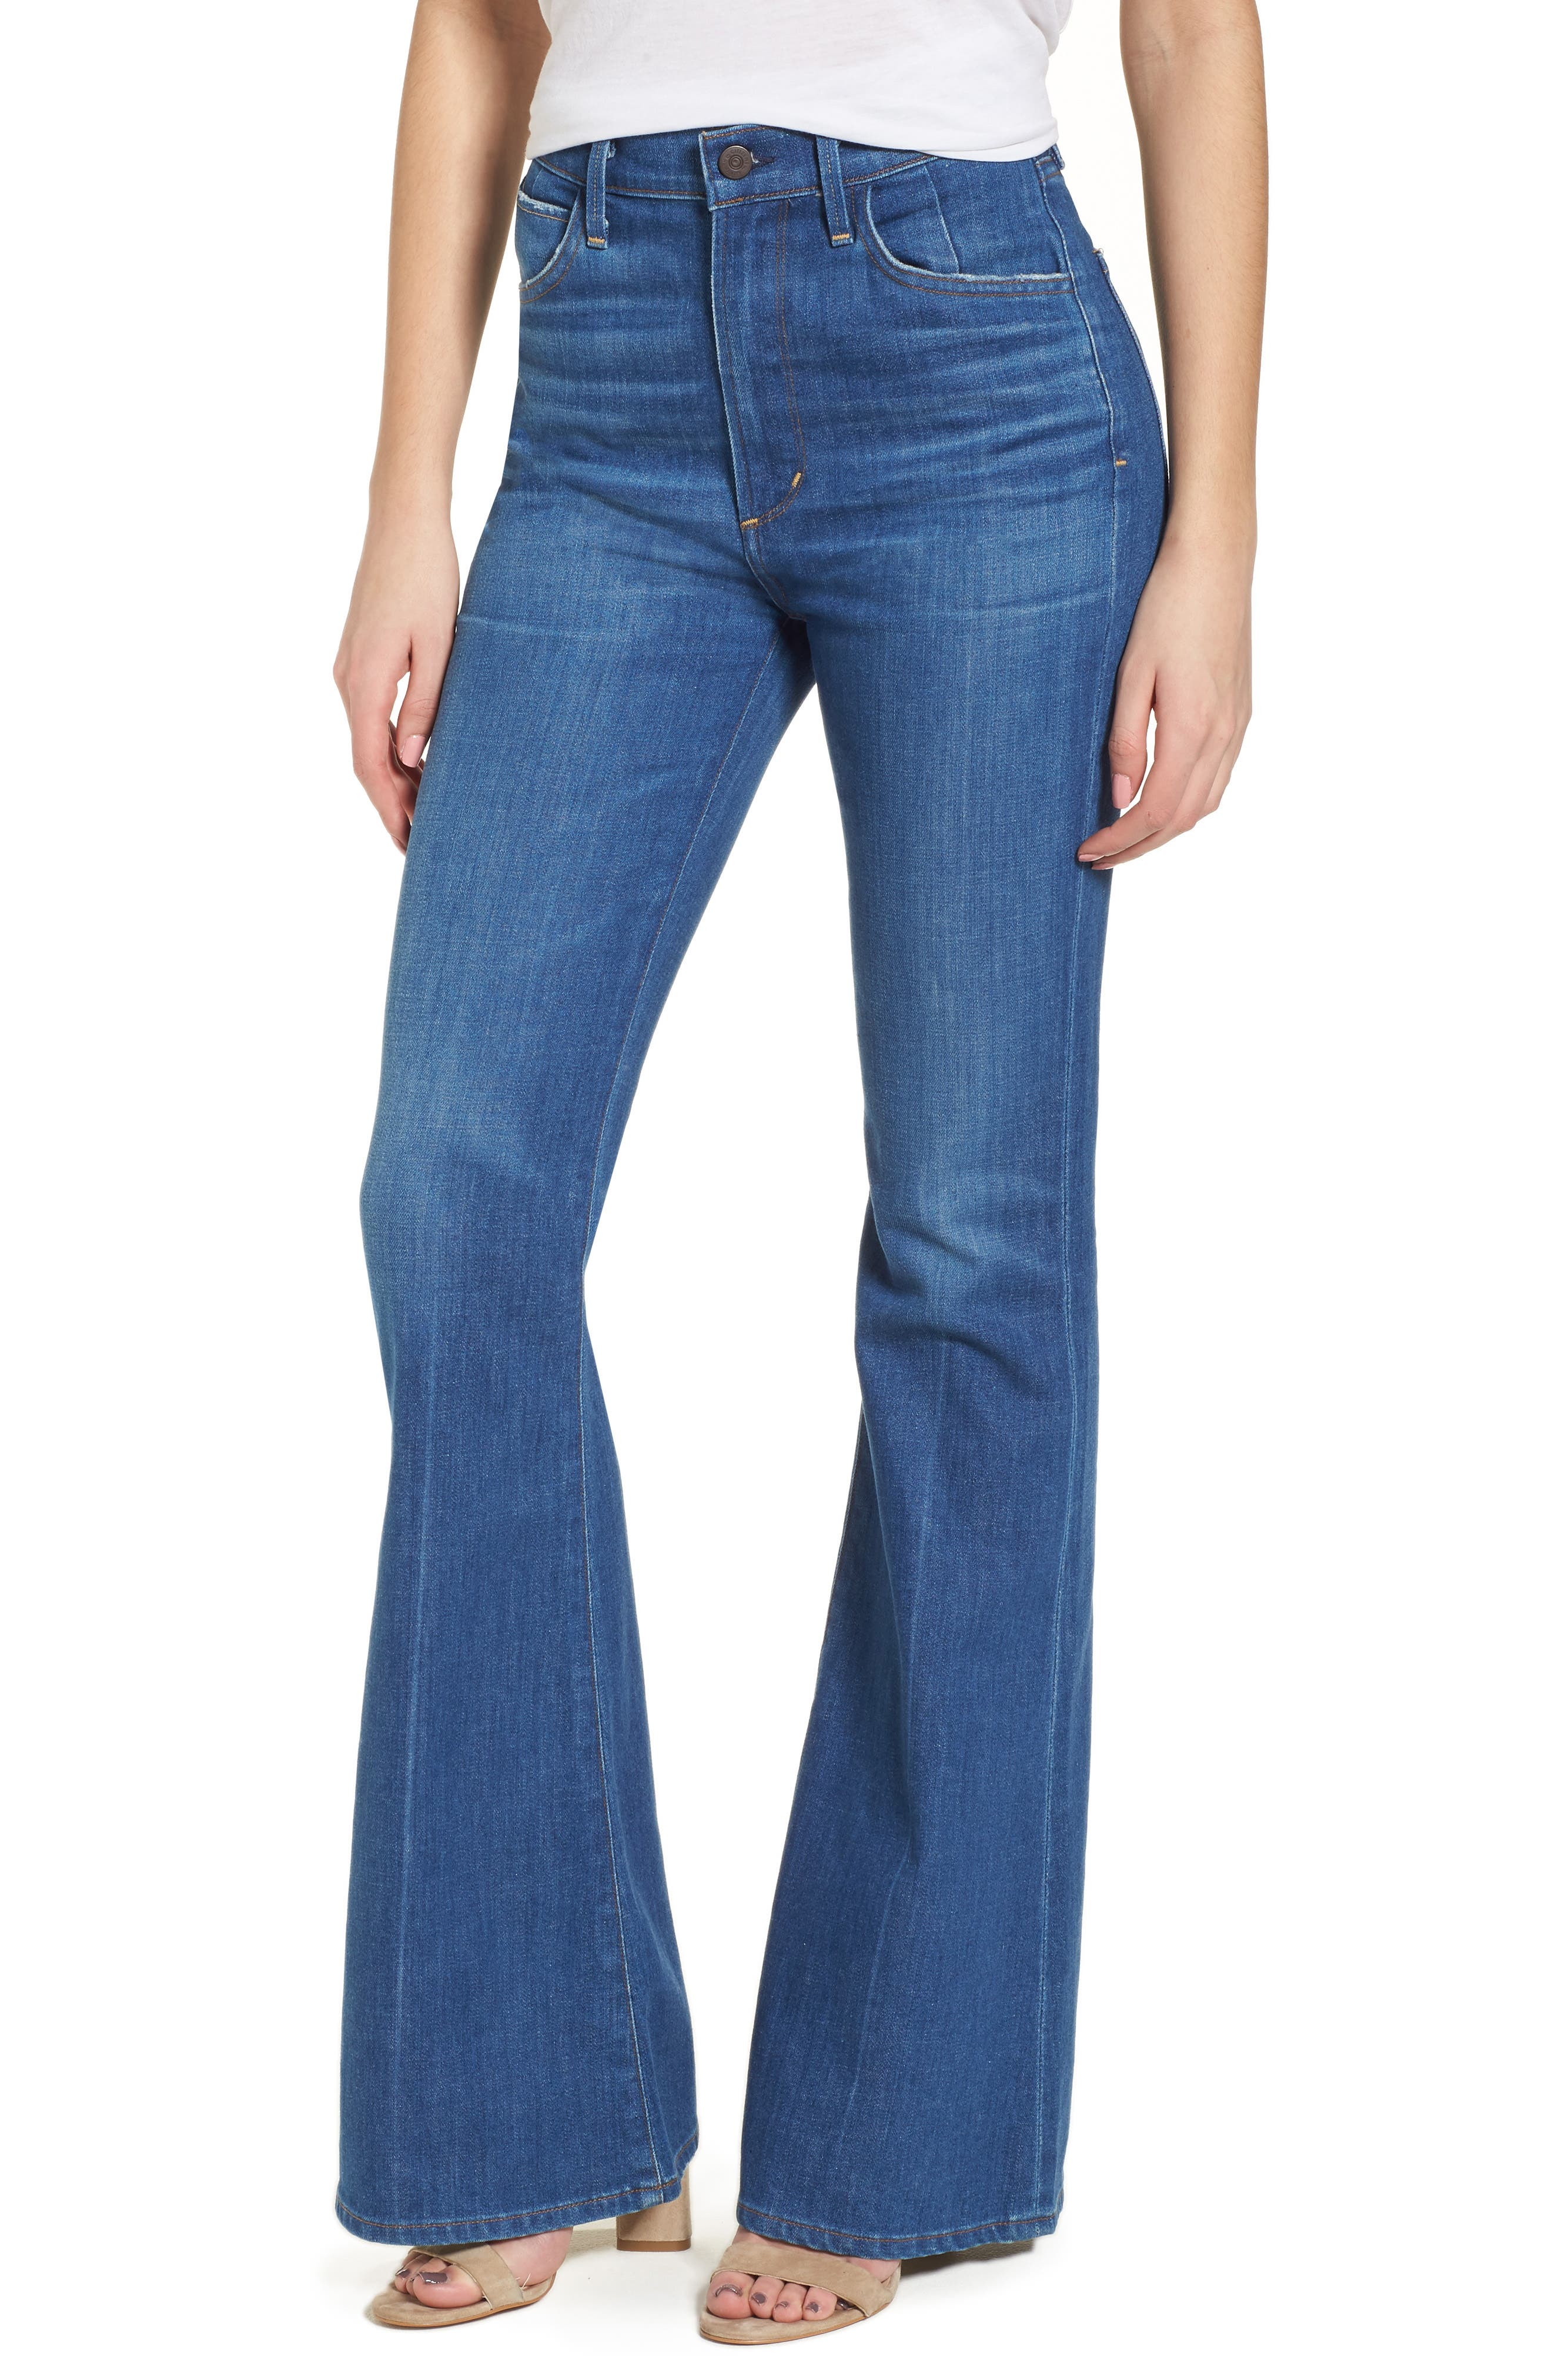 Cherie High Waist Bell Jeans,                         Main,                         color, Frampton